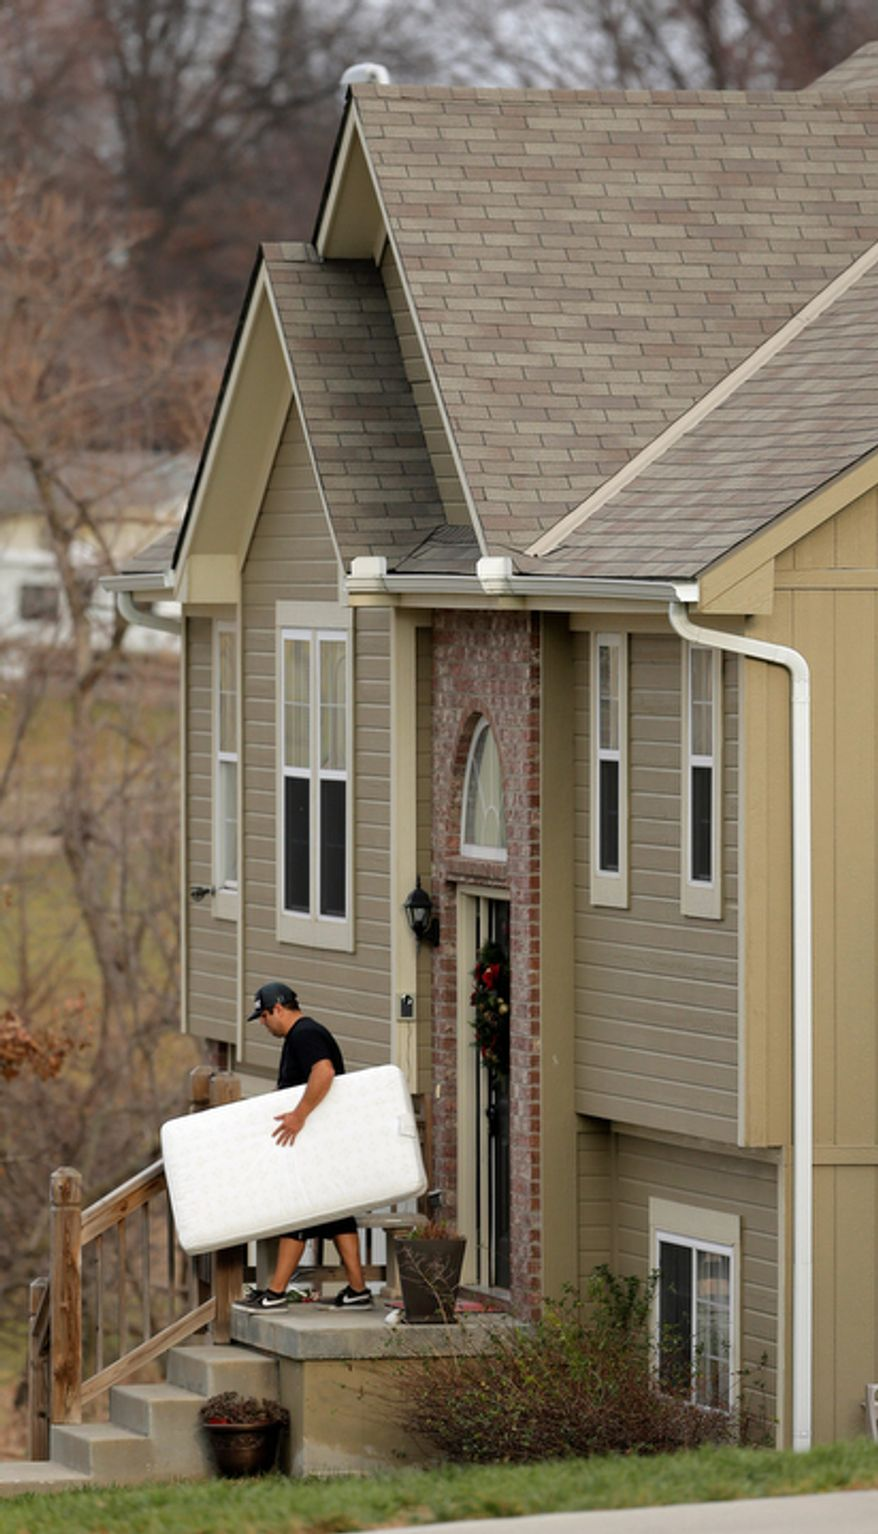 An unidentified man carries items out of a Kansas City home shared by Kansas City Chiefs linebacker Jovan Belcher and his girlfriend Kasandra Perkins on Dec. 3, 2012. Belcher killed Perkins and himself two days earlier. (Associated Press)